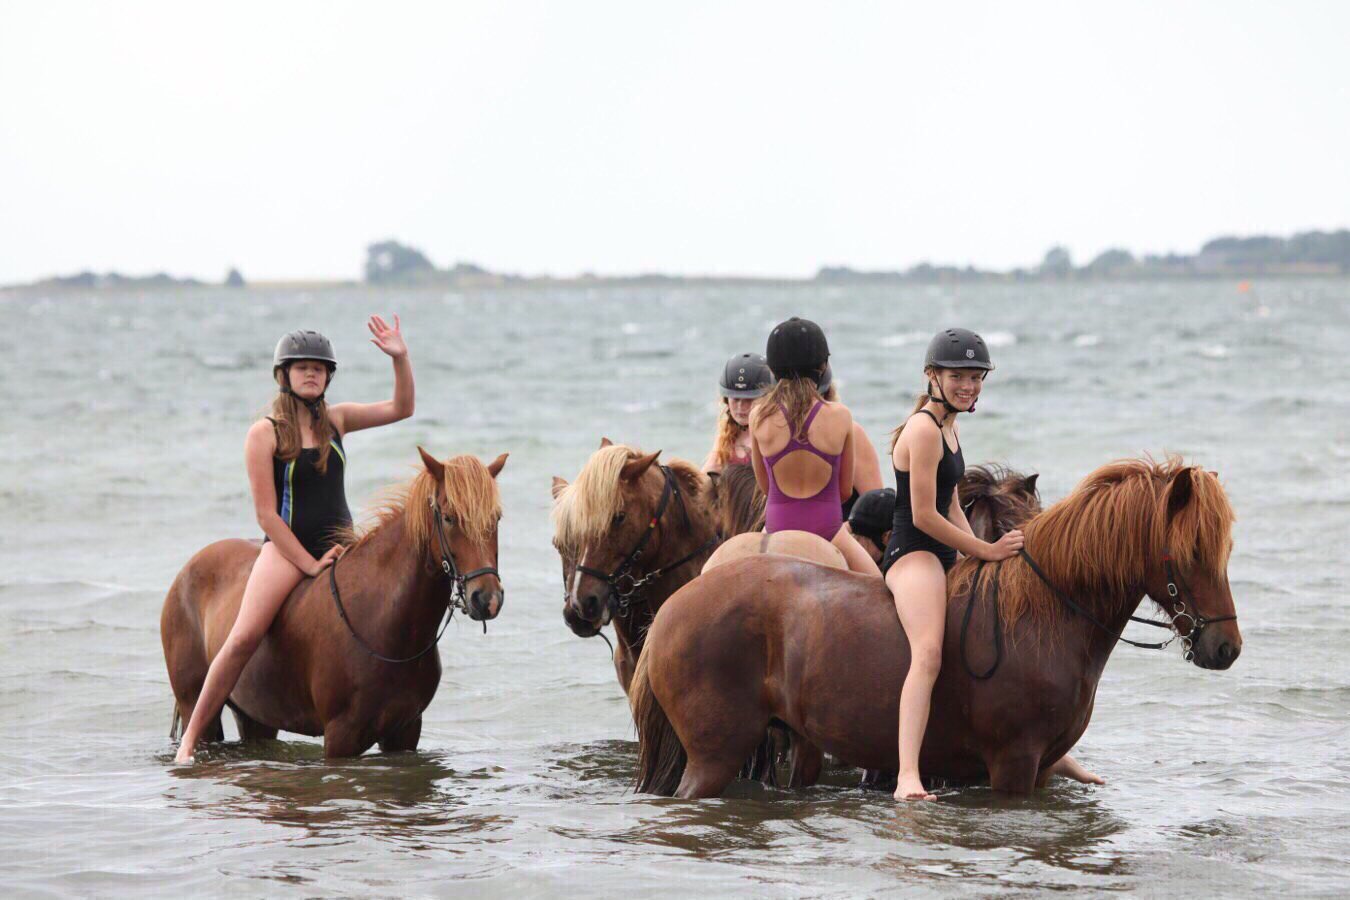 In the water on horses